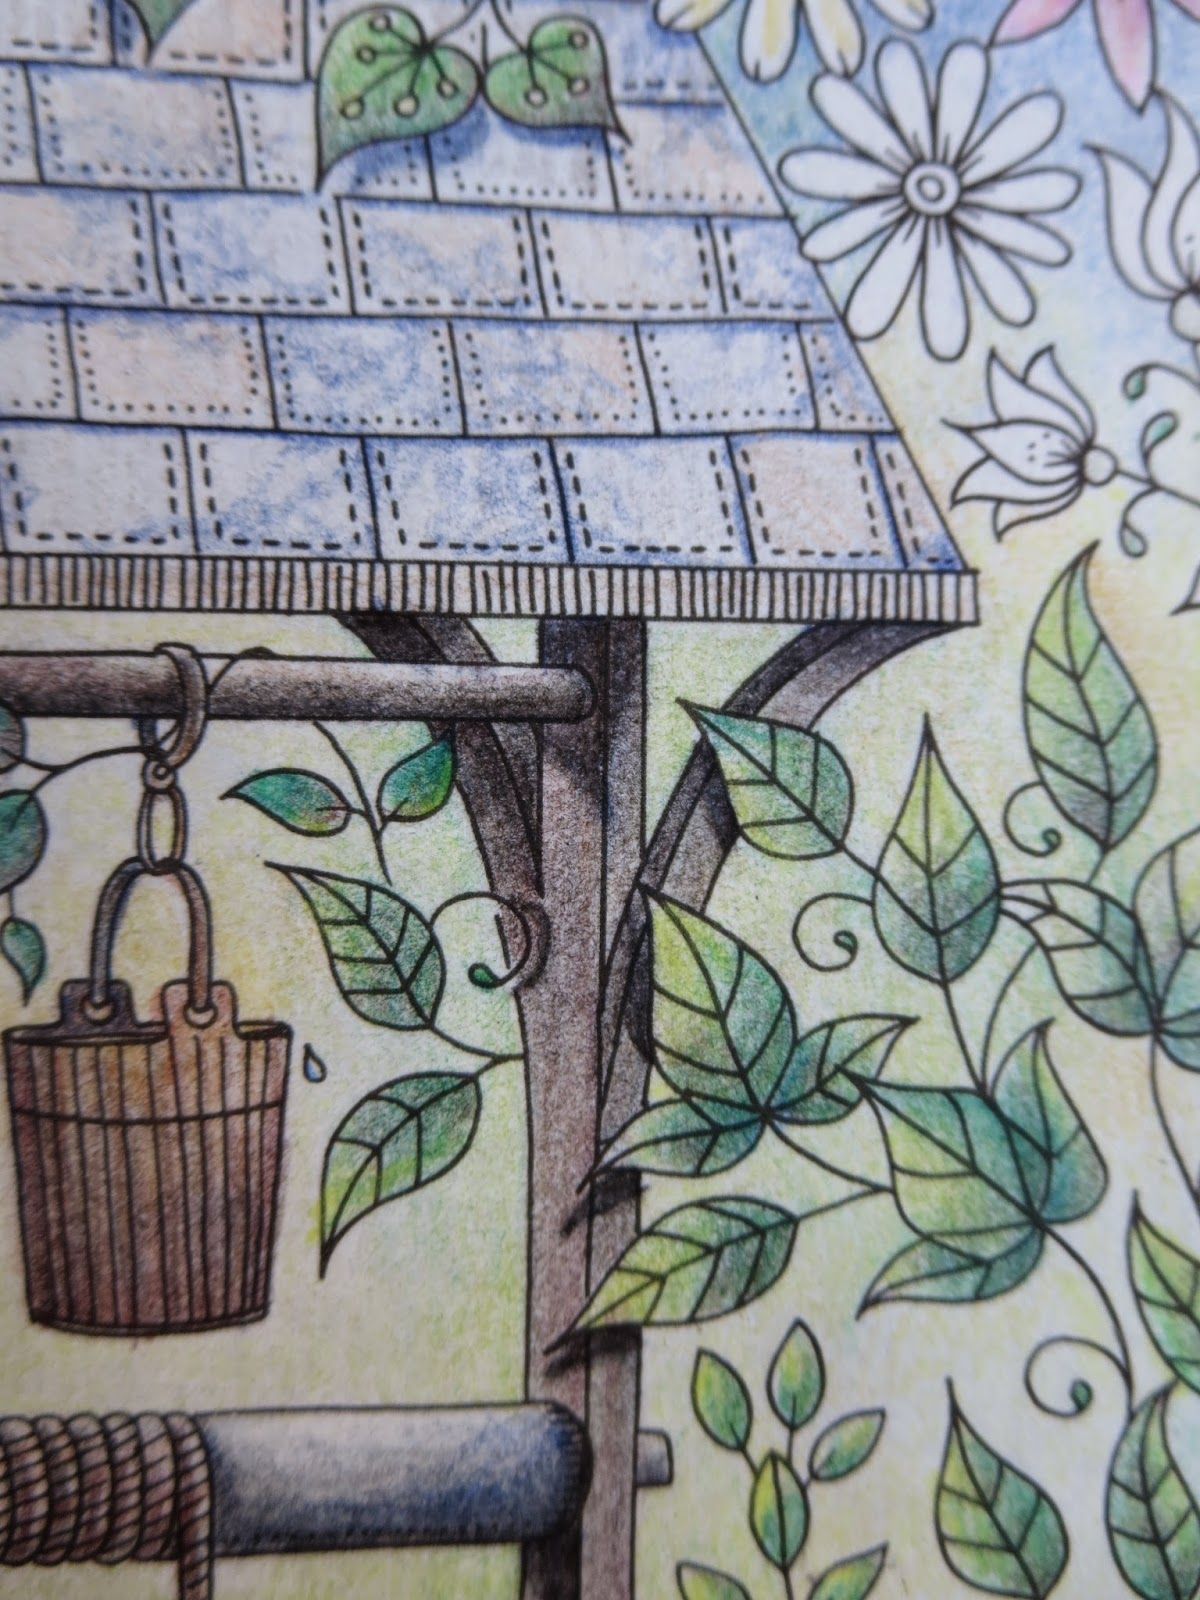 Passion For Pencils My Secret Garden Colouring Book The Well Part